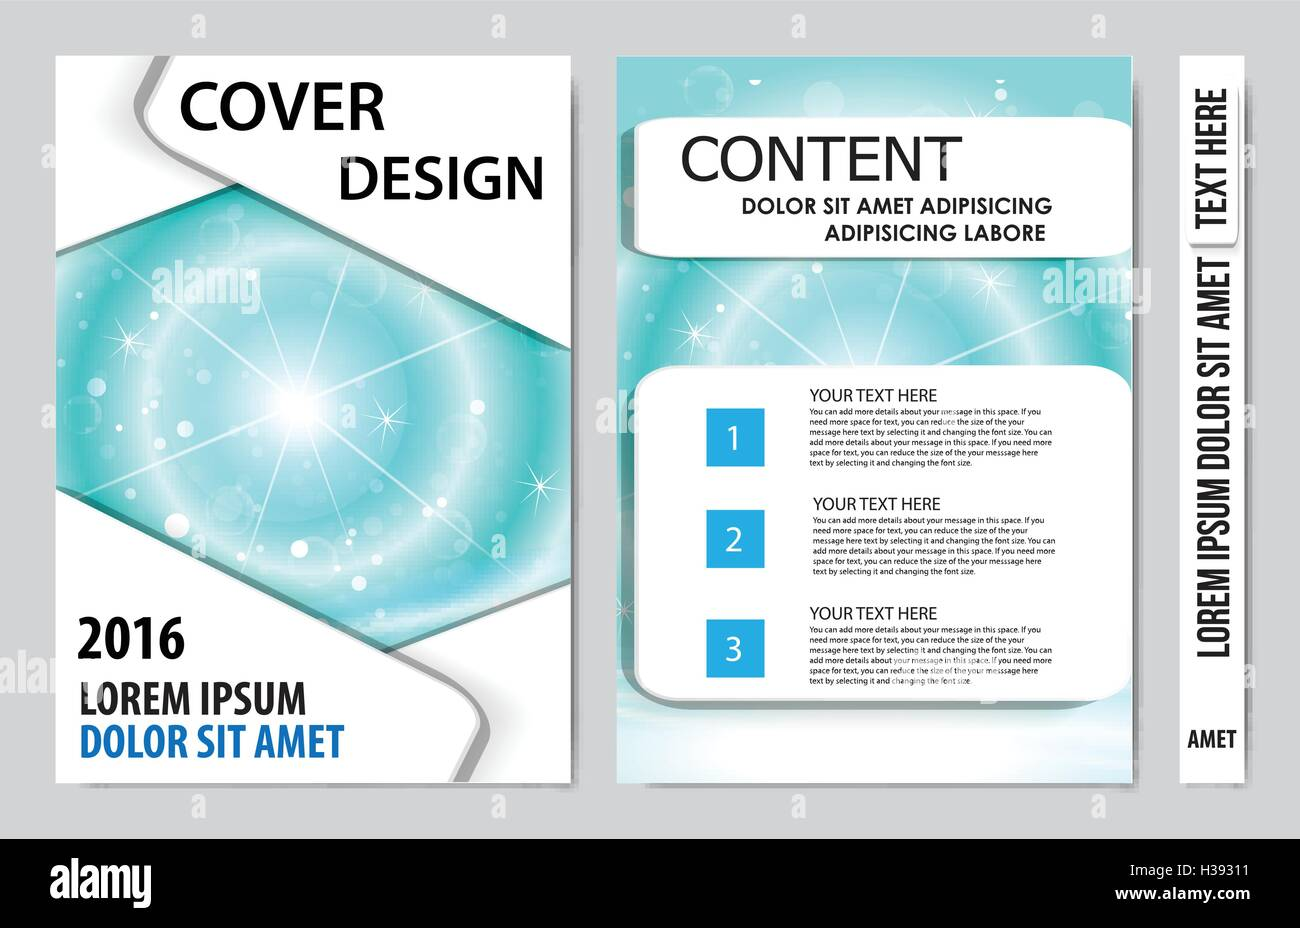 cover book presentation layout design template background stock